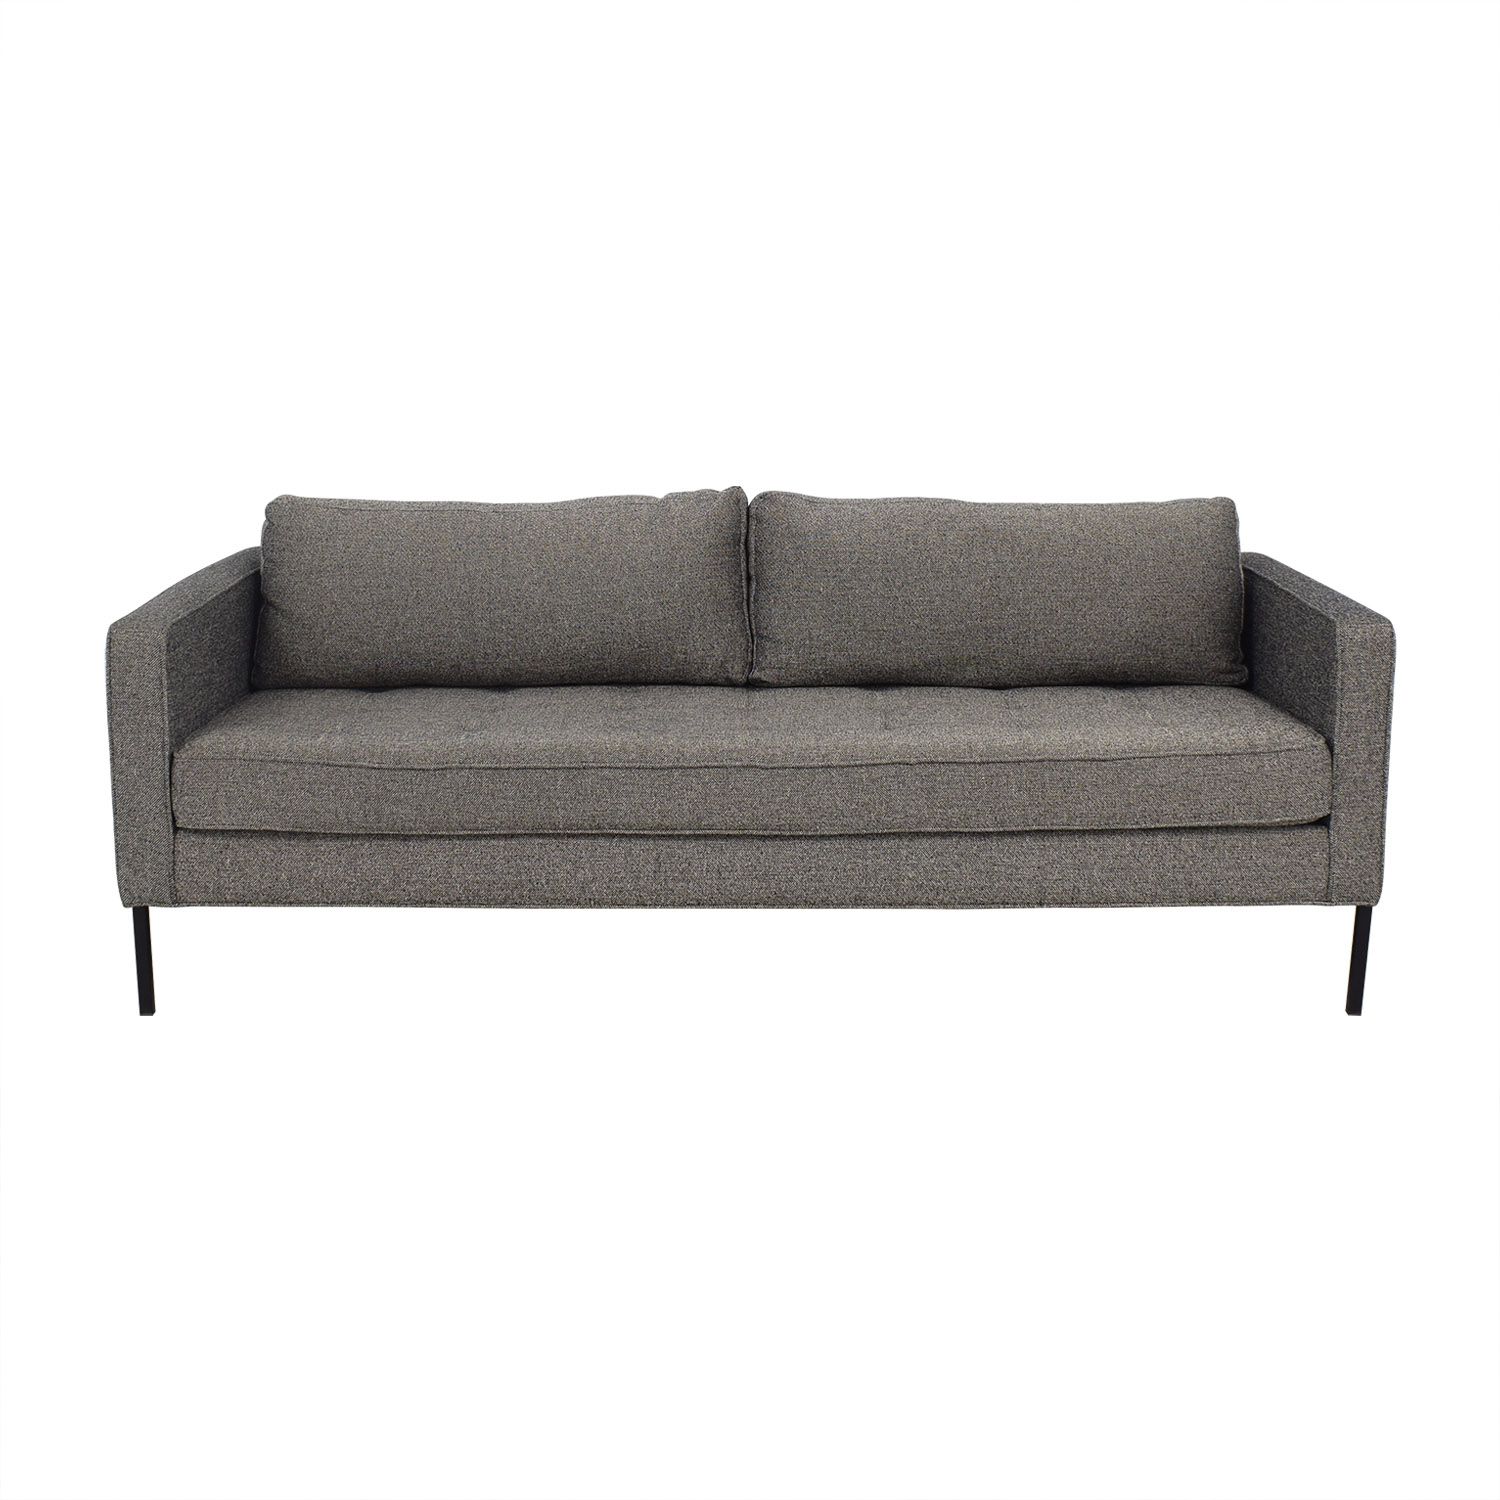 Blu Dot Paramount Sofa sale